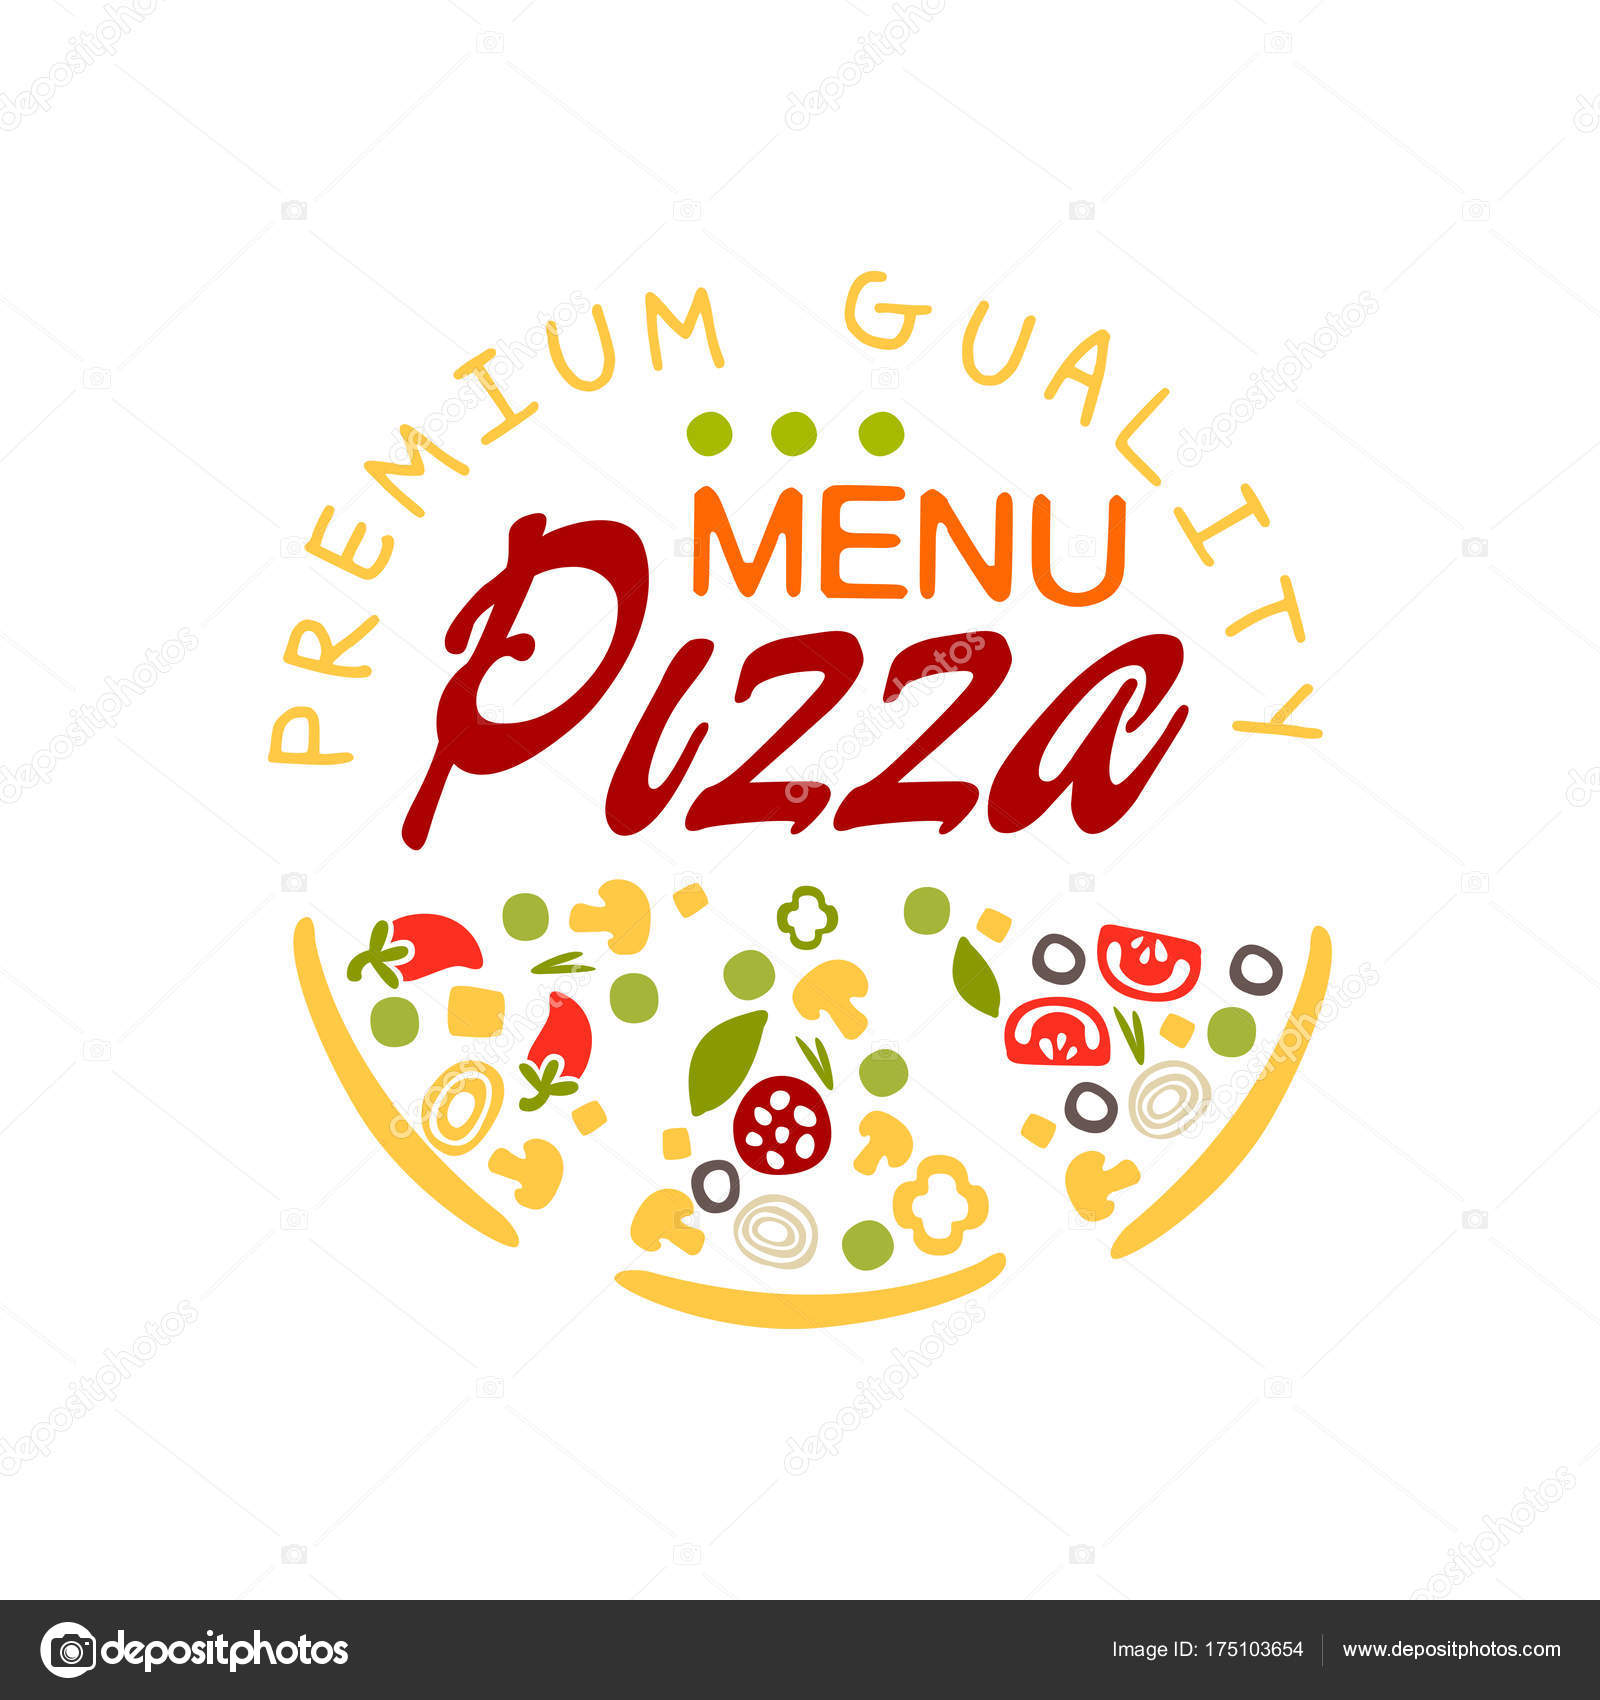 Indian Restaurant Logo Design Ideas Flat Pizza House Logo Creative Design Element With Pizza Slice Emblem For Cafe Menu Food Delivery Company Vector Colorful Pizzeria Badge Stock Vector C Topvectors 175103654